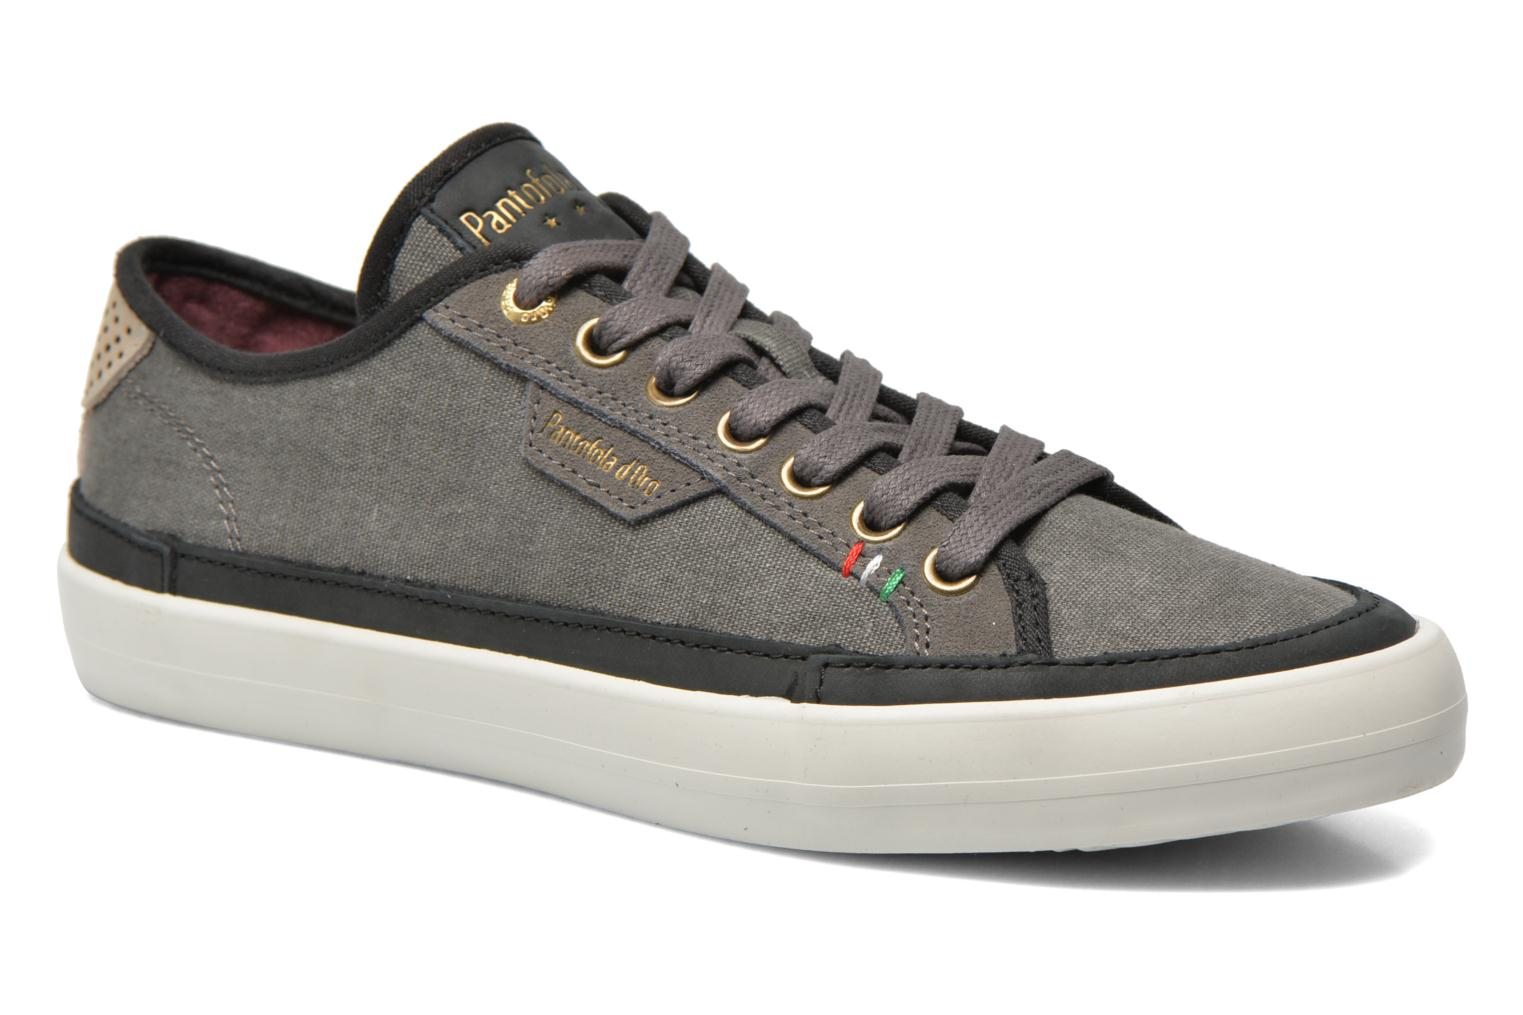 Sneakers Veneto Canvas Low by Pantofola d'Oro